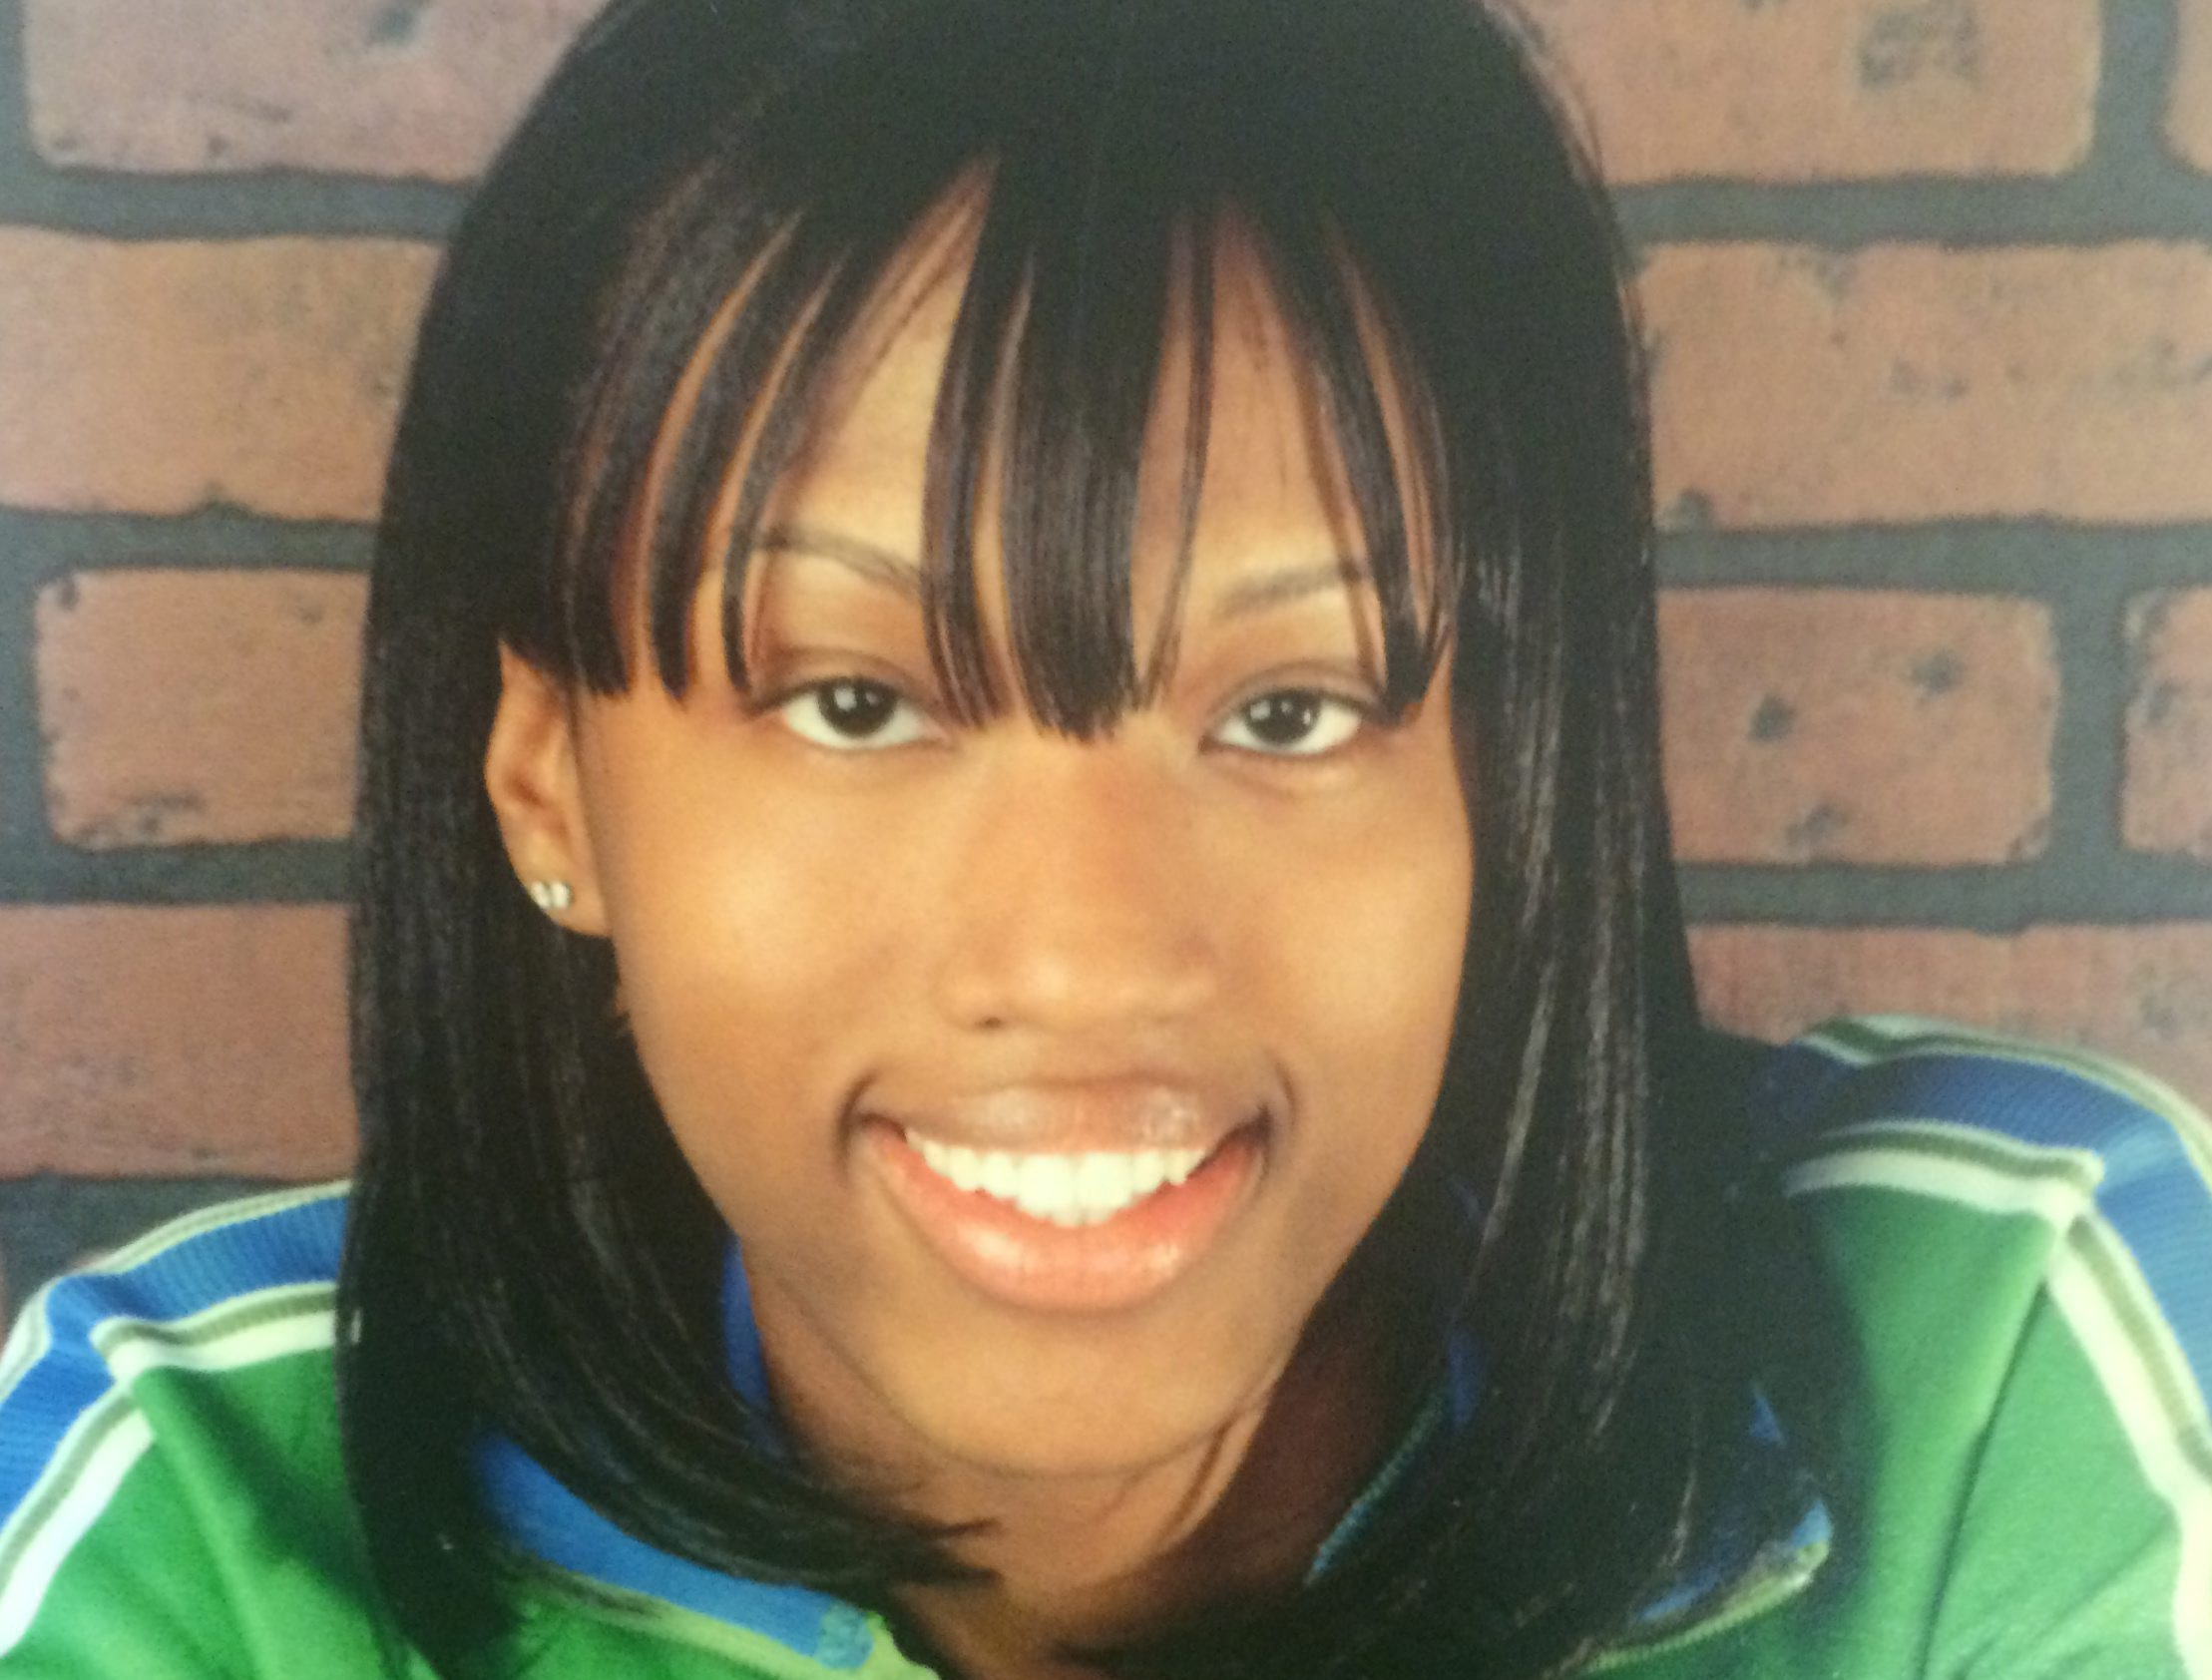 The State Commission of Correction will investigate the death of 27-year-old India T. Cummings.